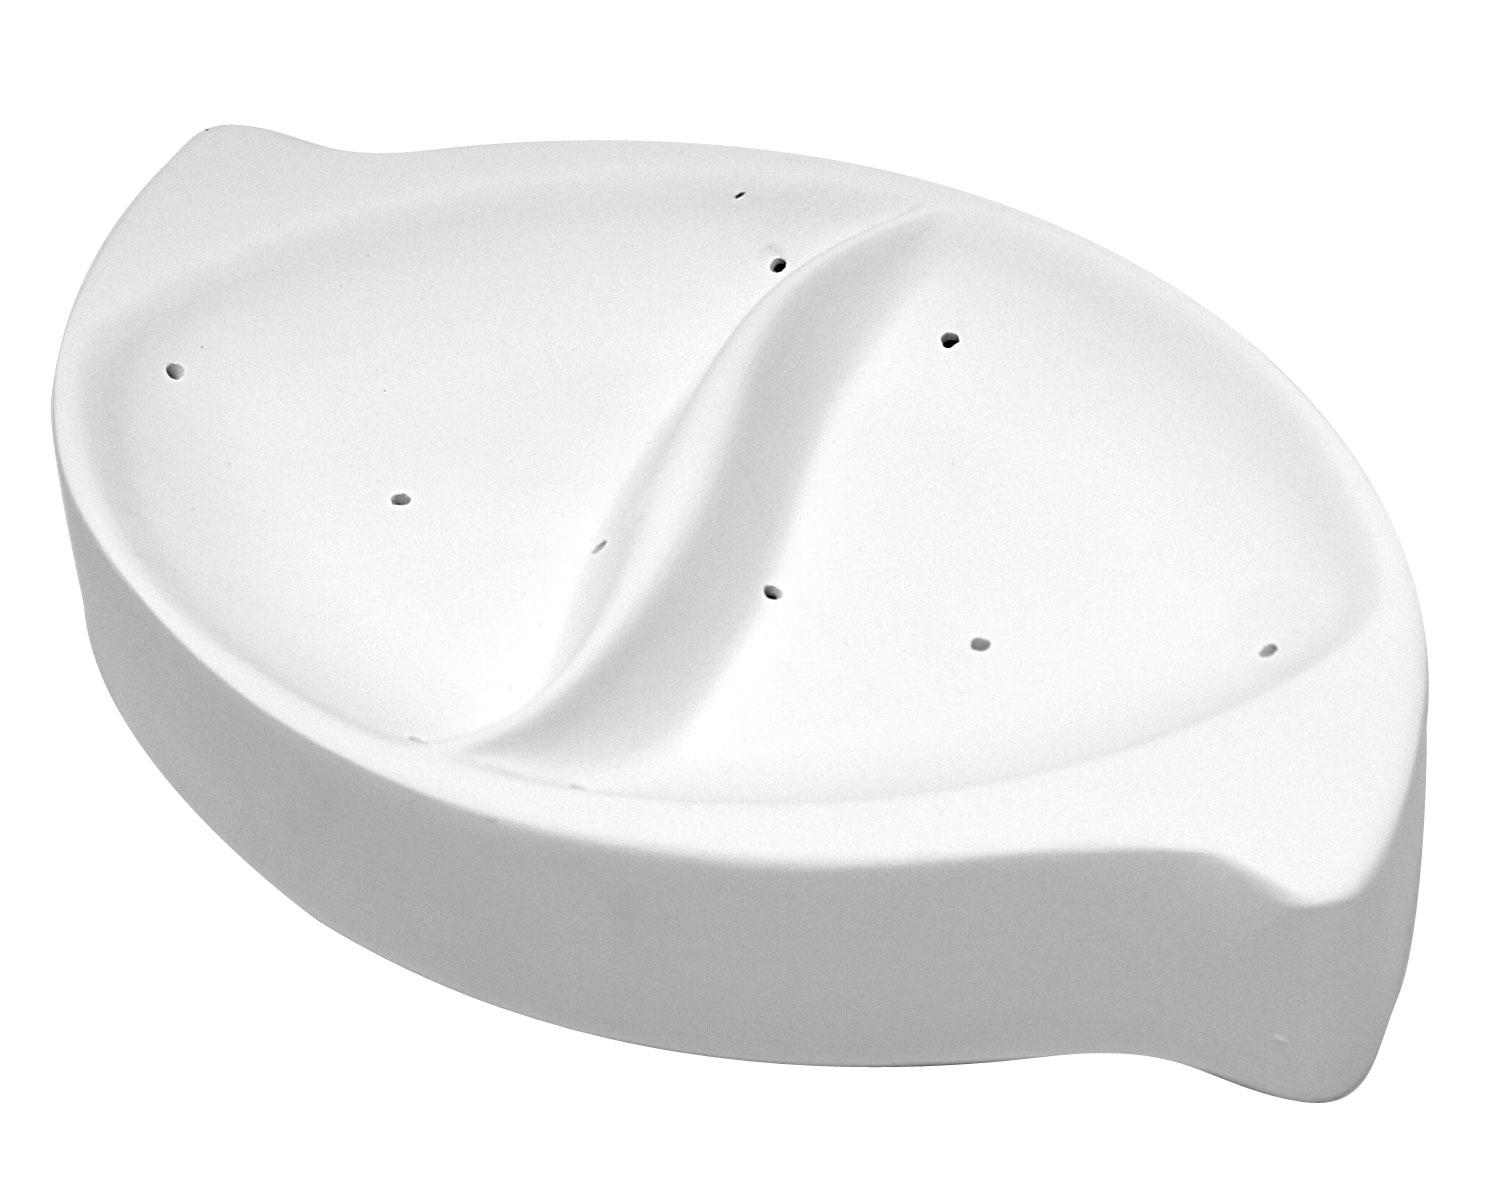 10-3/8 x 6-3/8 Oval Divided Dish Mold